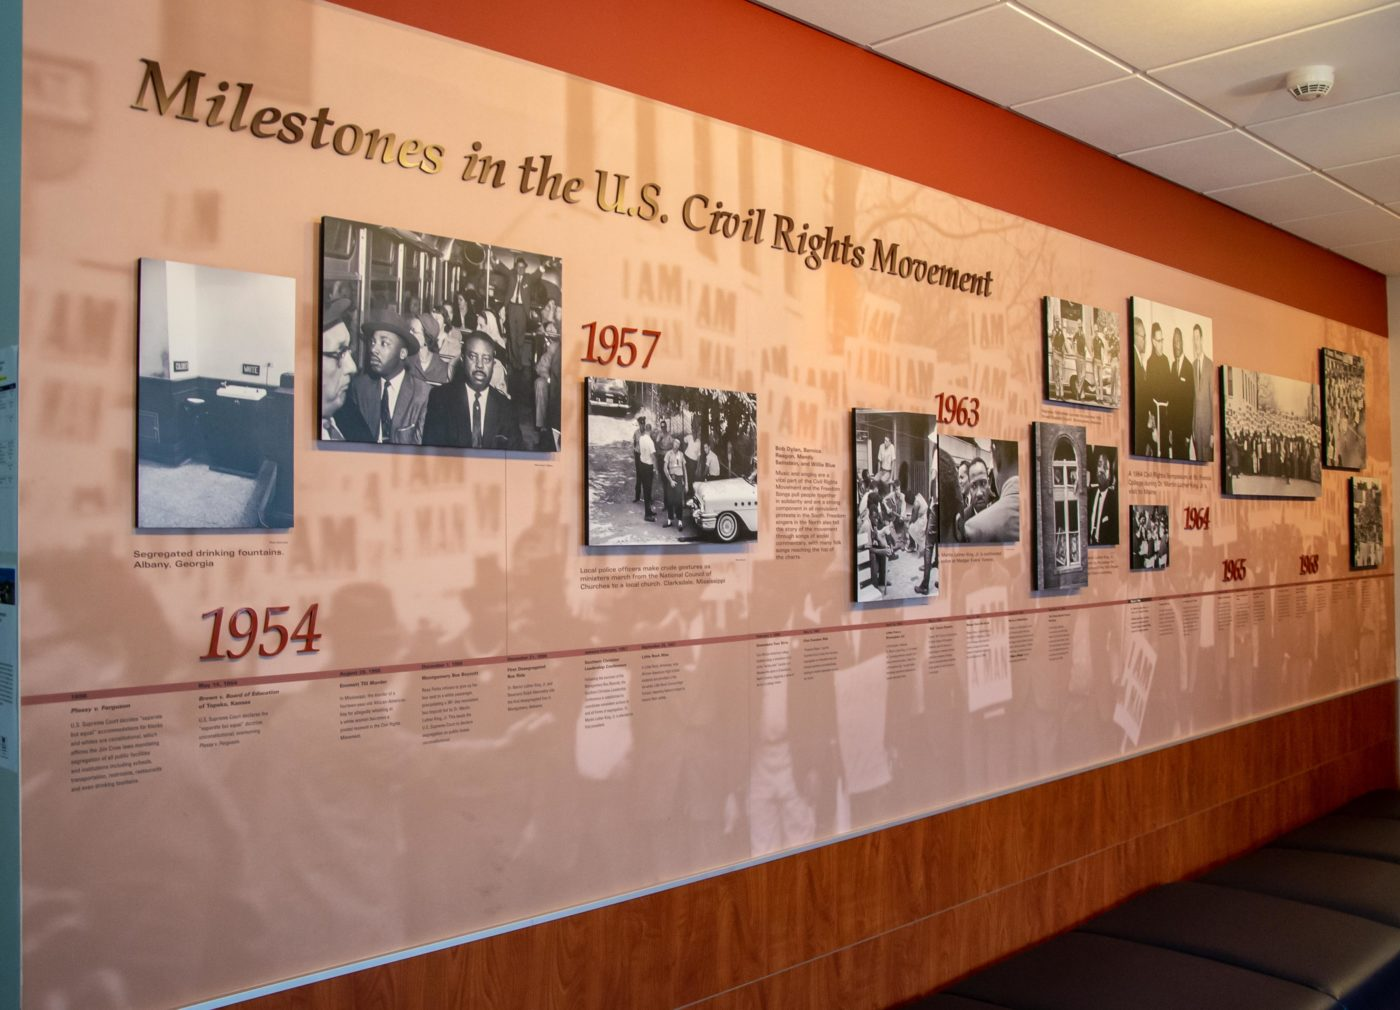 Milestones in the U.S. Civil Rights Movement exhibit wall with historical photographs and timeline